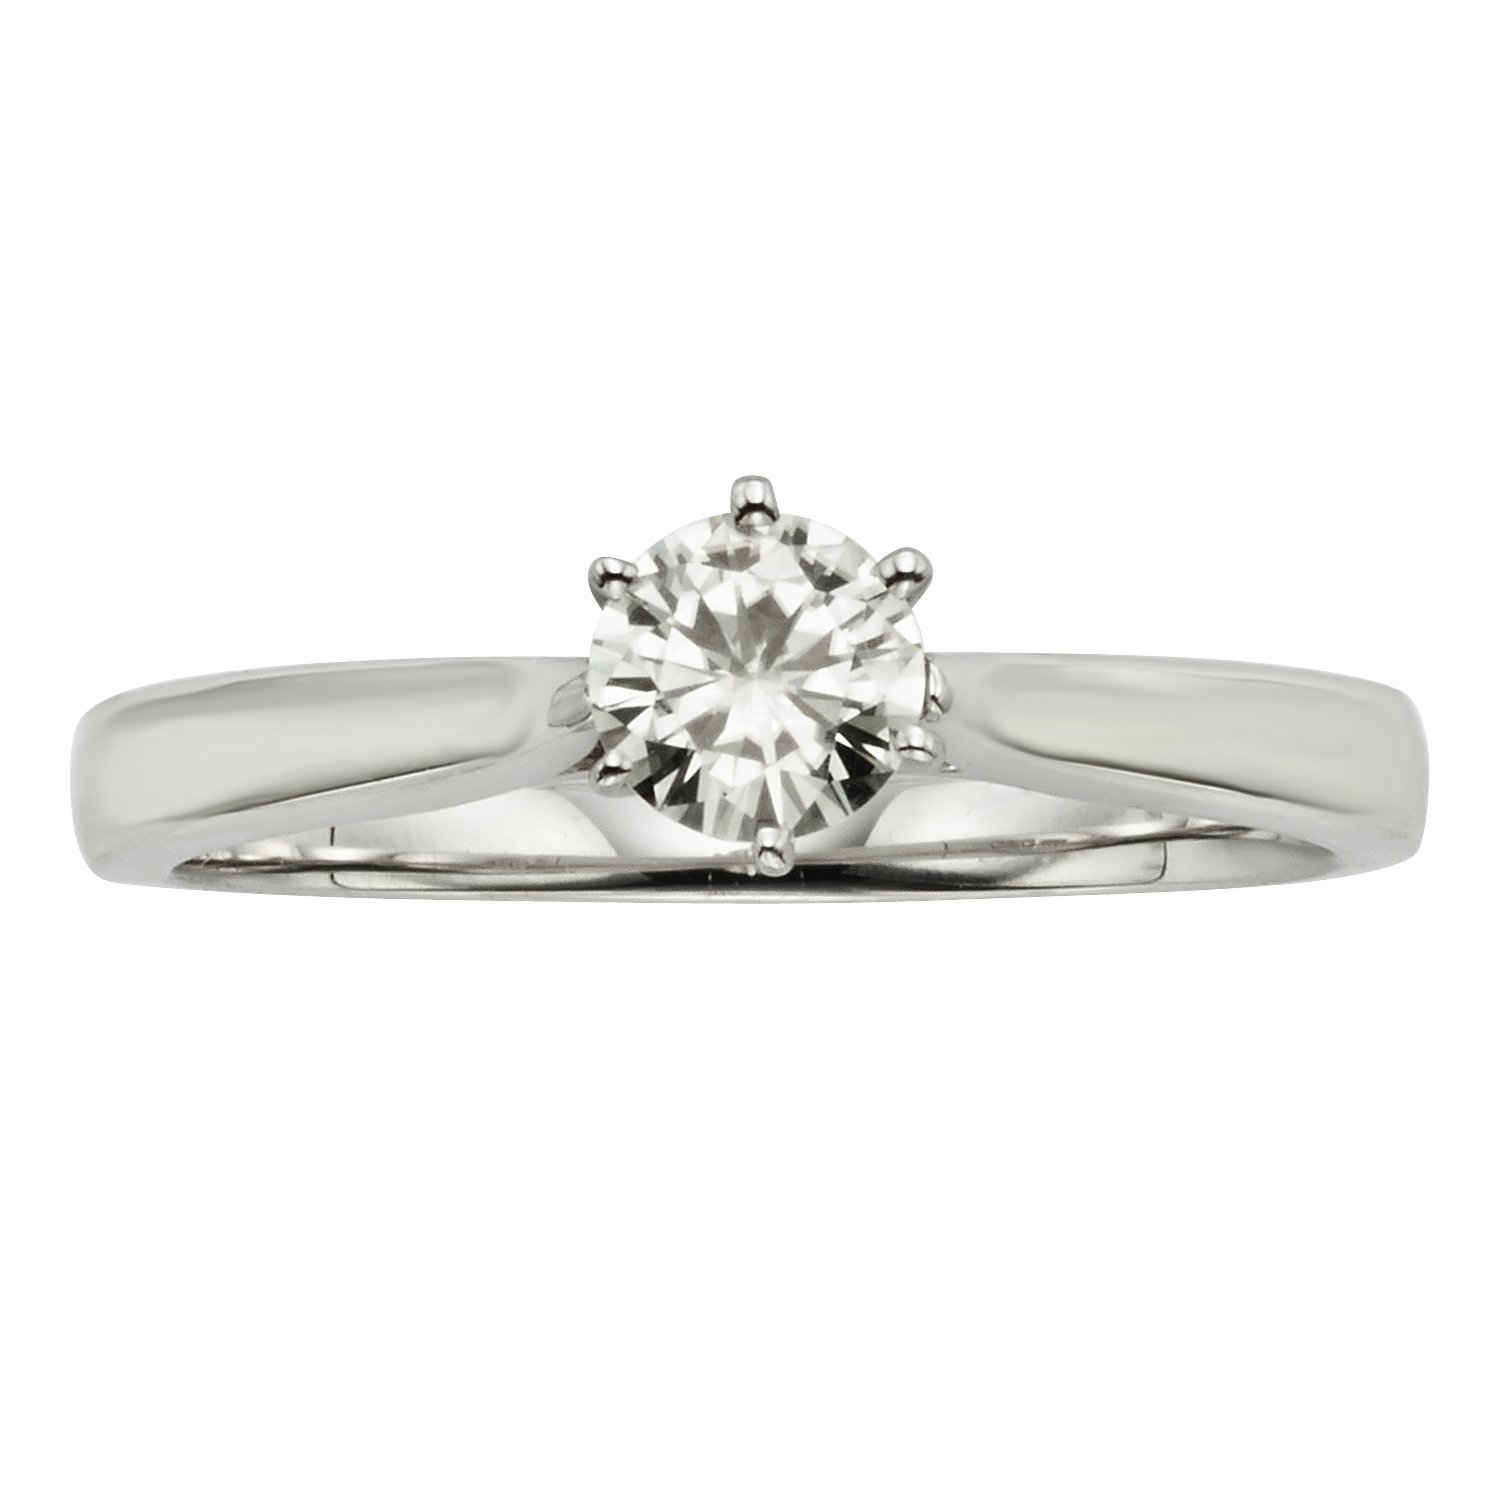 Forever Classic Round 4.5mm Moissanite Ring, 0.33ct DEW - size 6 by Charles & Colvard